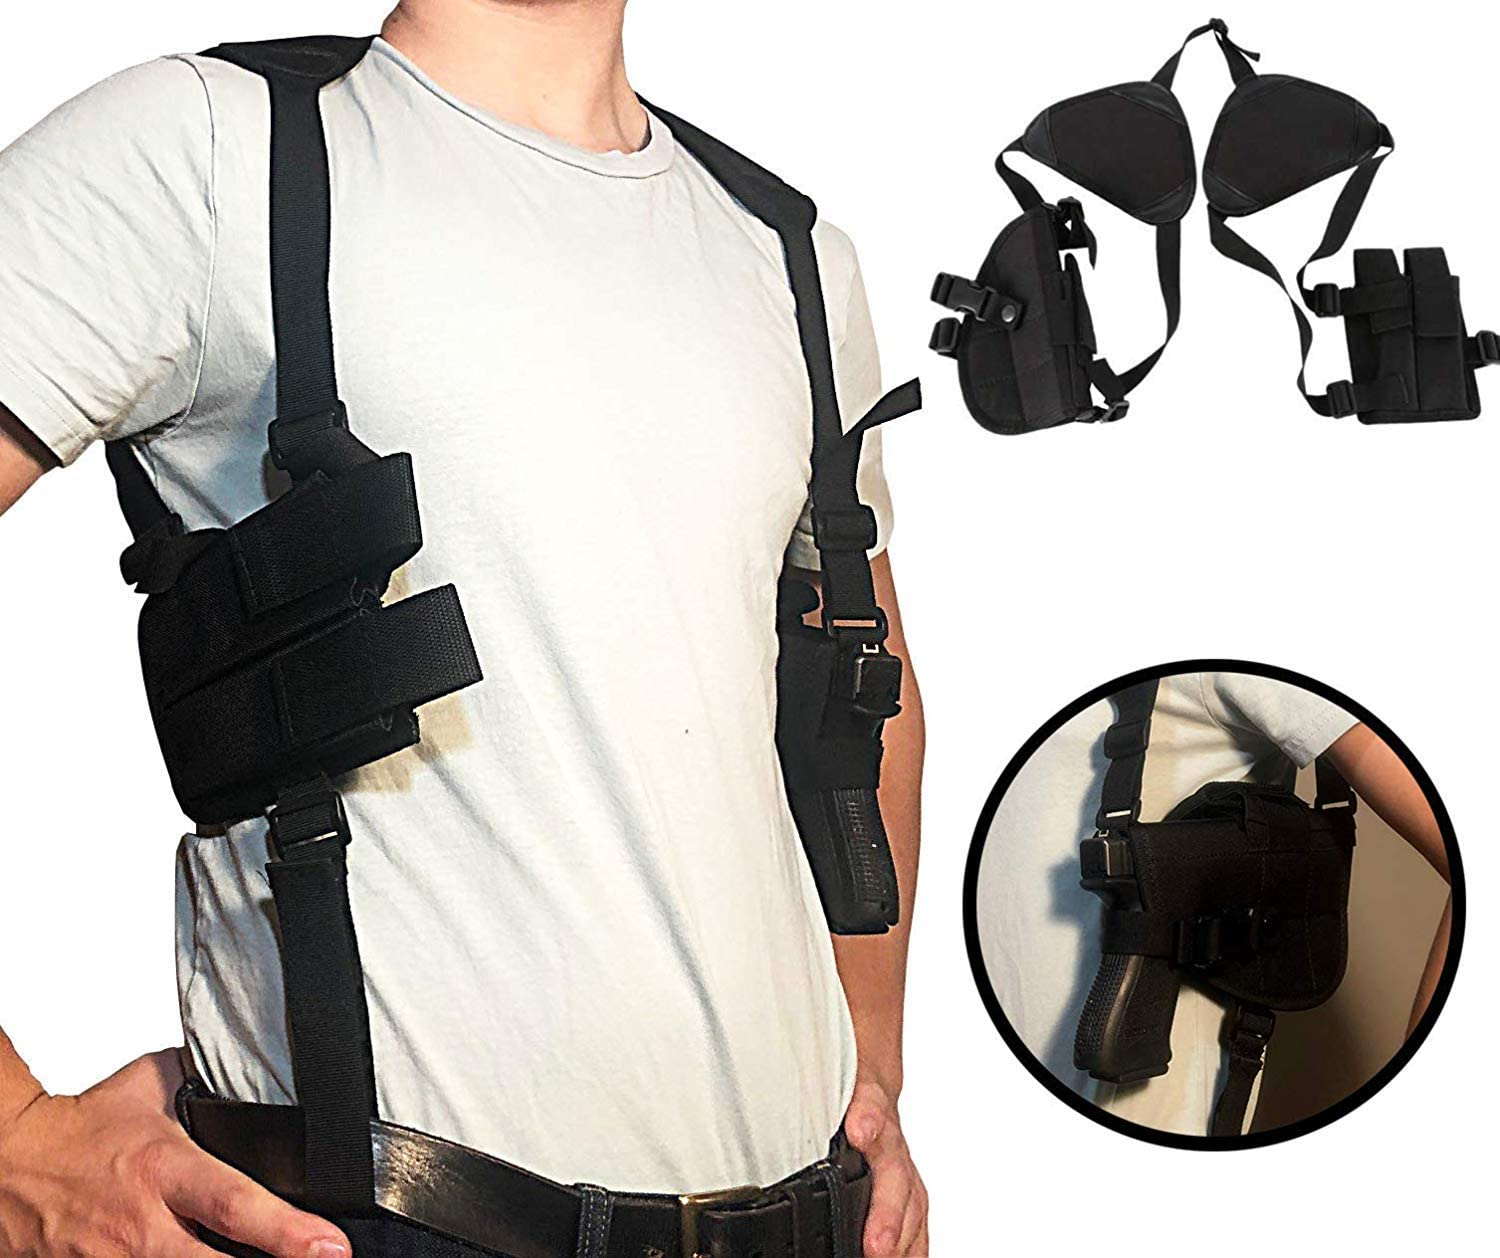 Amazon.com : Gexgune Concealed Carry Shoulder Holster - Outdoor Tactical  Police Security Universal Left Right Hand Pistol Pouch Shoulder Gun Holster  for Glock 17 19 22 23 31 32 (Black) : Sports & Outdoors